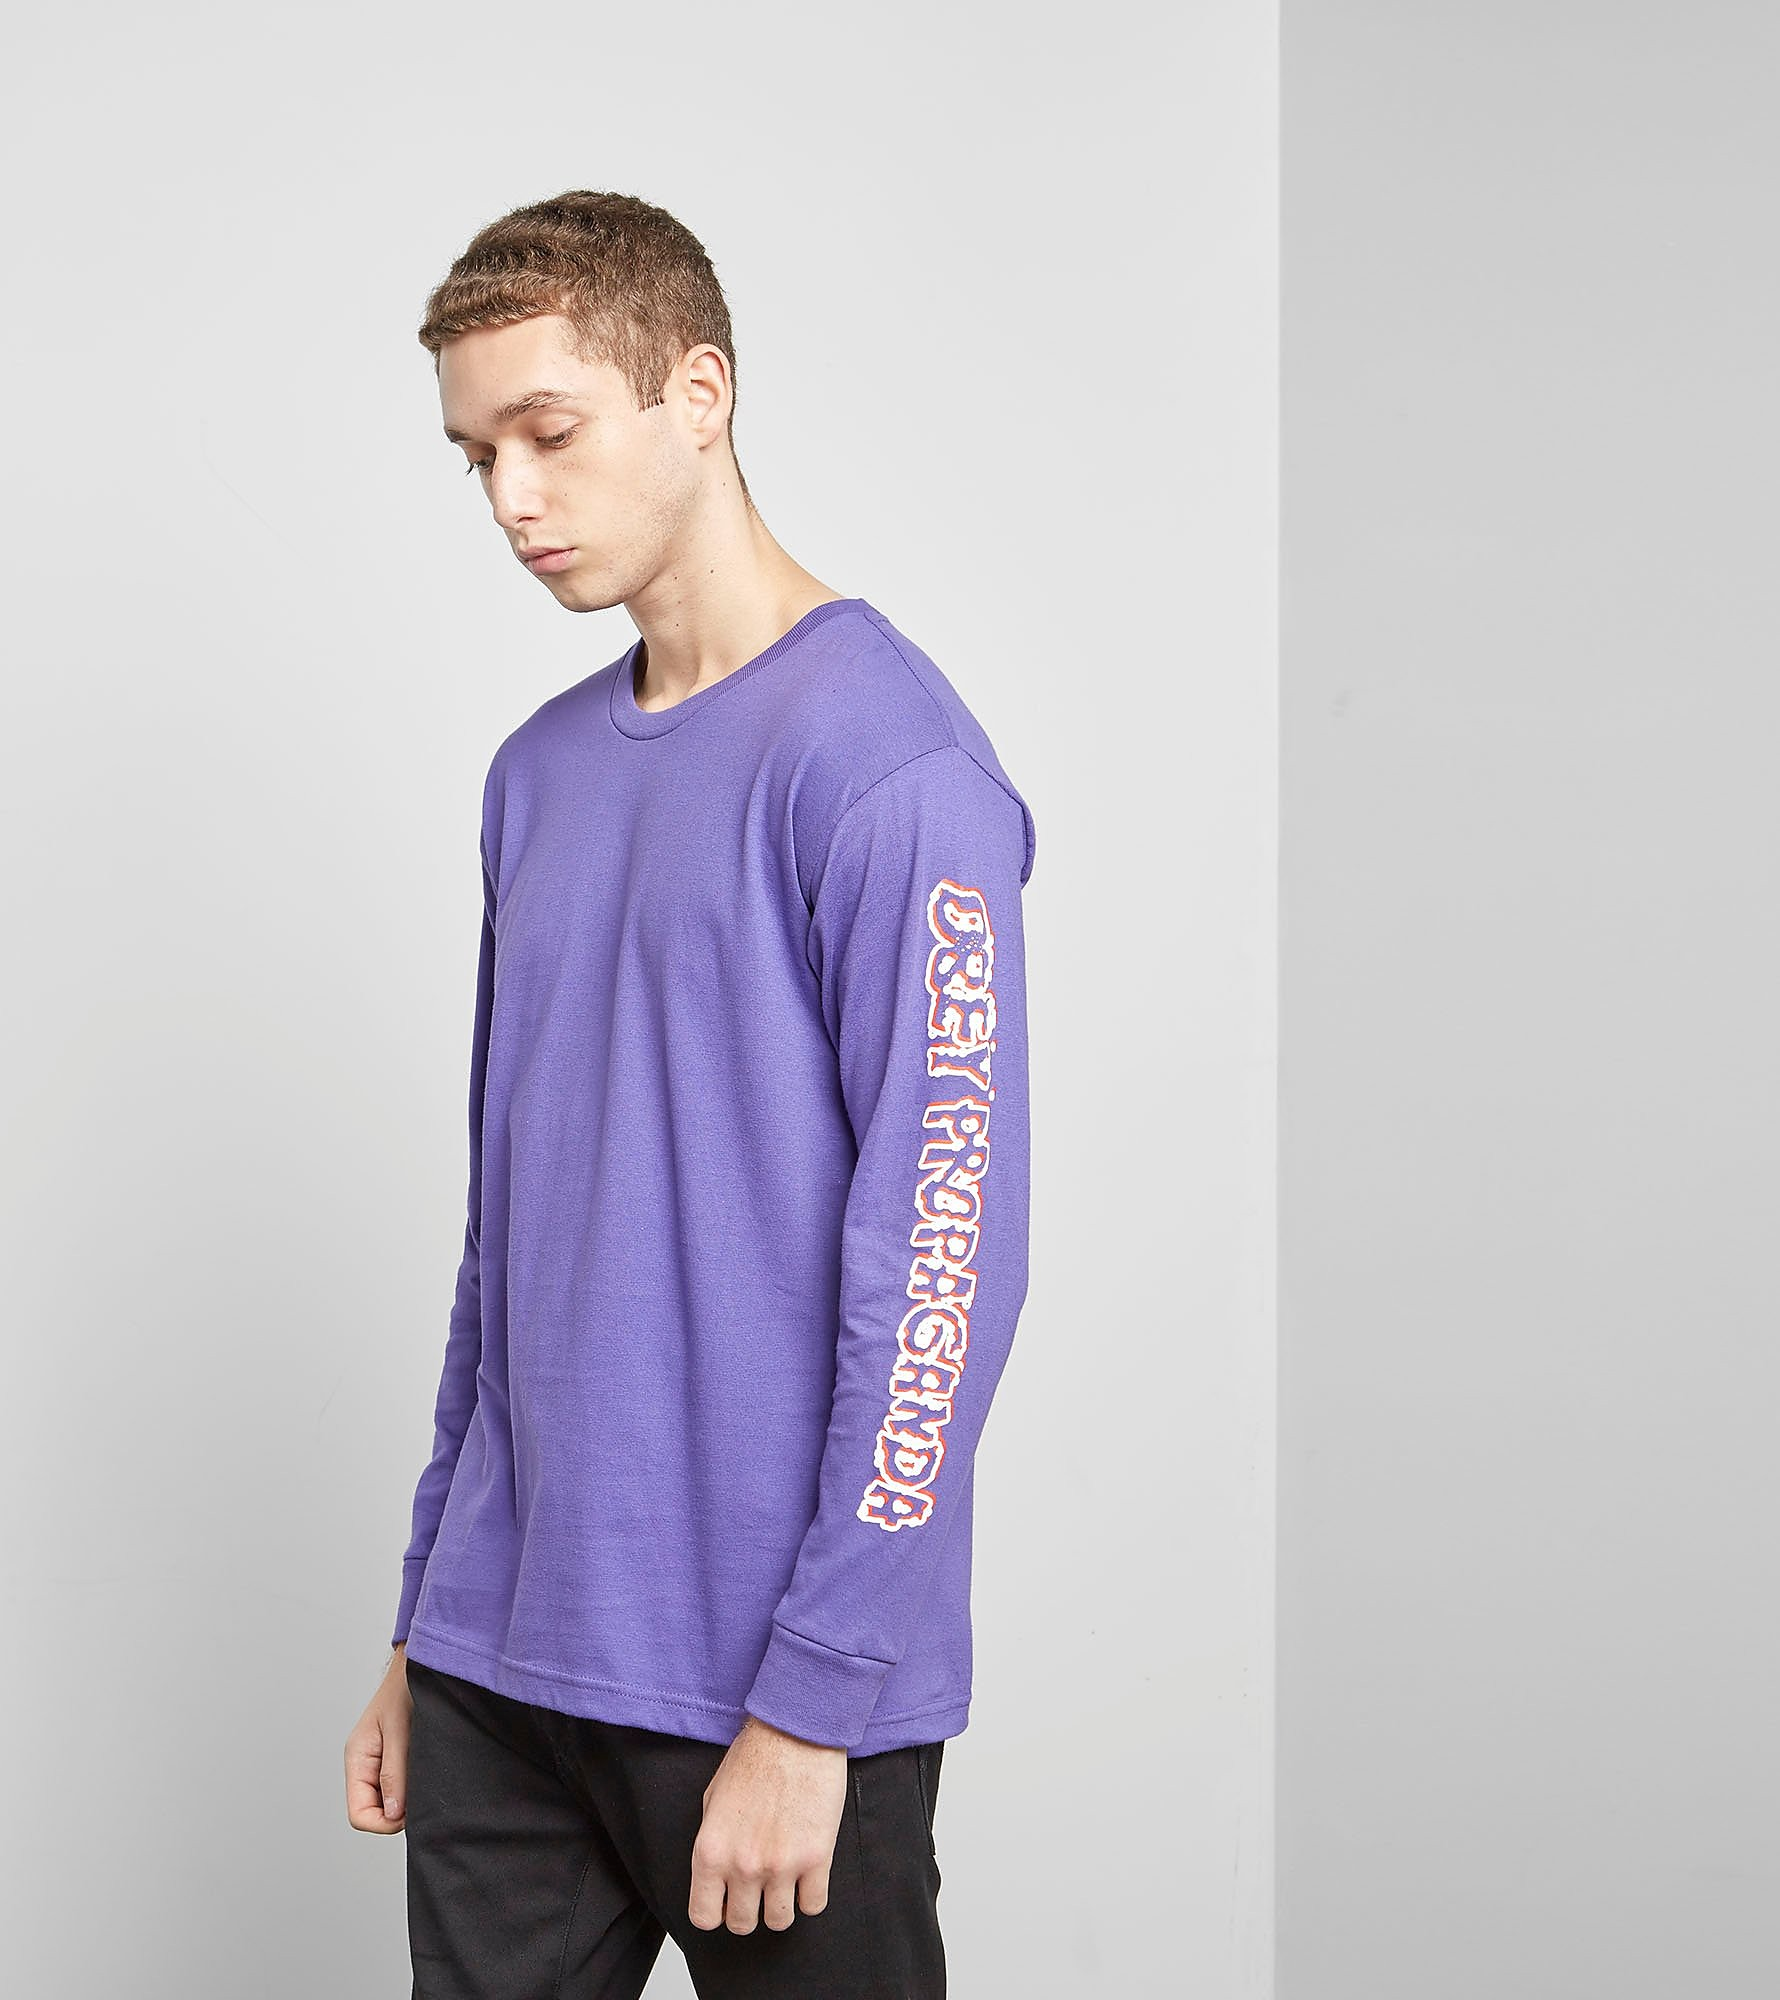 Obey Long Sleeved Public Opinion T-Shirt